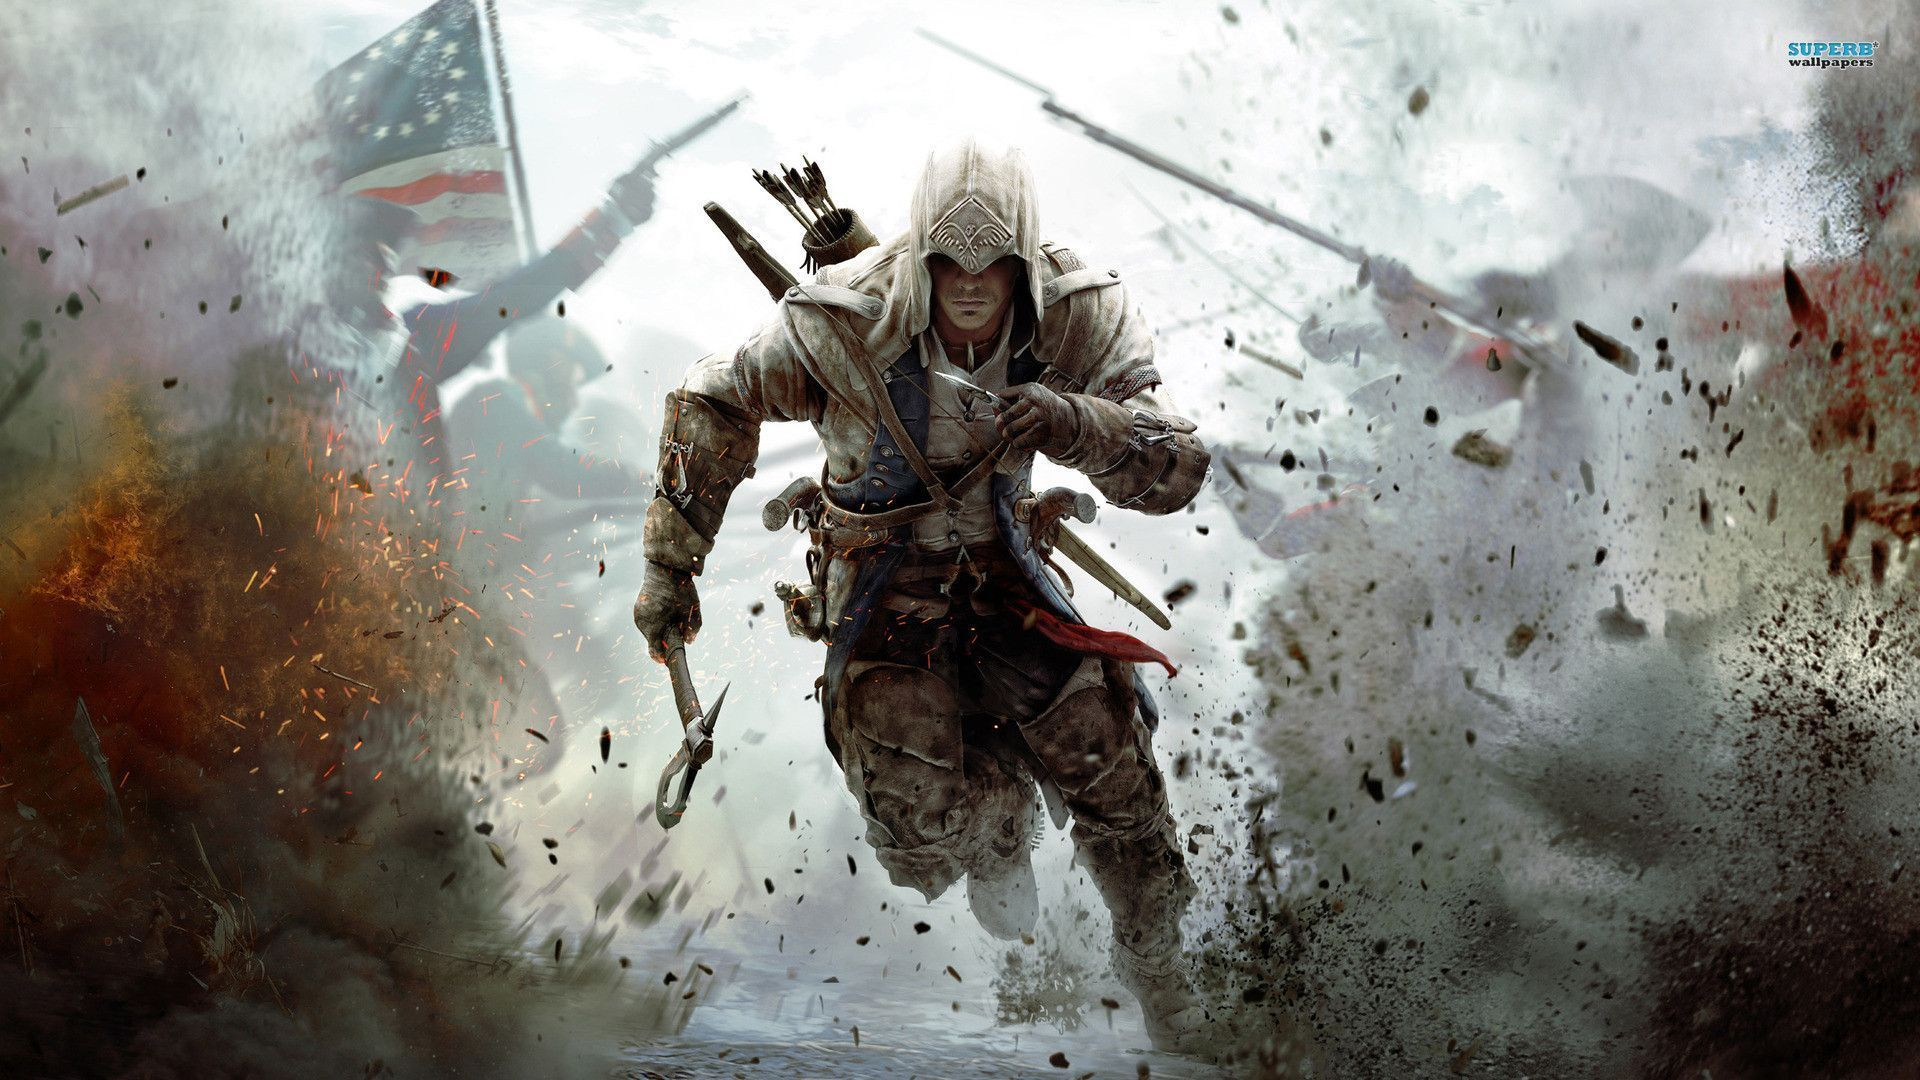 Assassins Creed 3 Wallpapers Hd Wallpaper Cave Assassin S Creed Wallpaper Assassins Creed Logo Assassins Creed 3